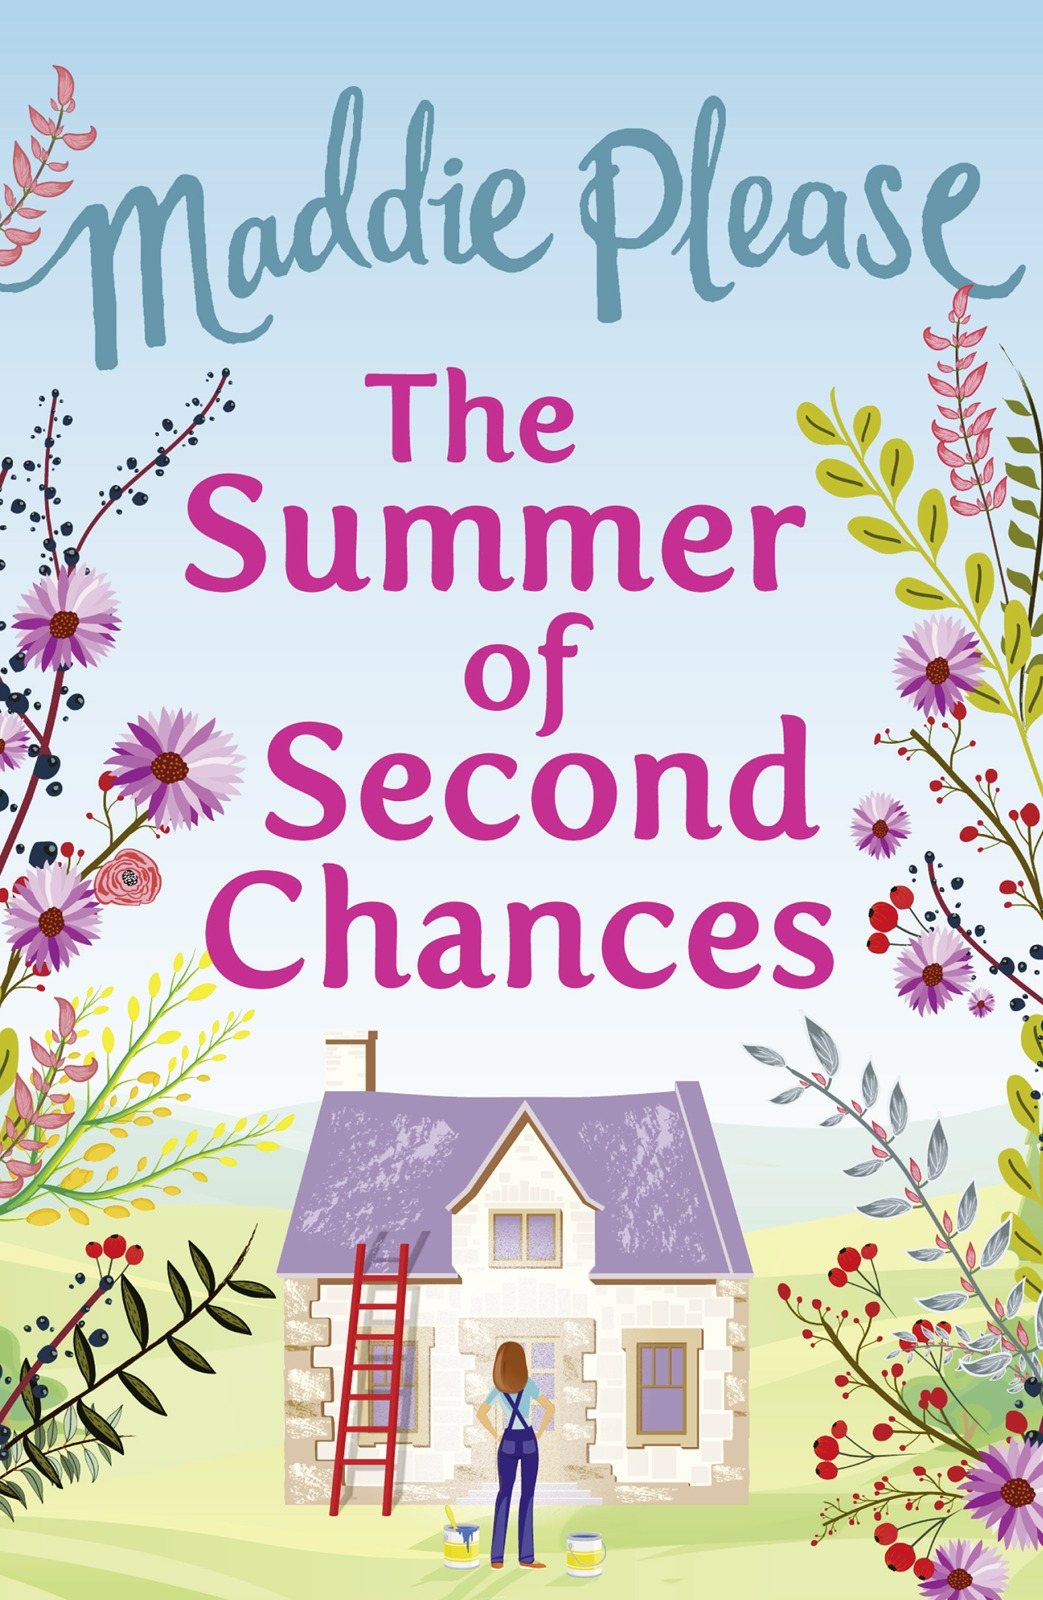 цена Maddie Please The Summer of Second Chances: The laugh-out-loud romantic comedy